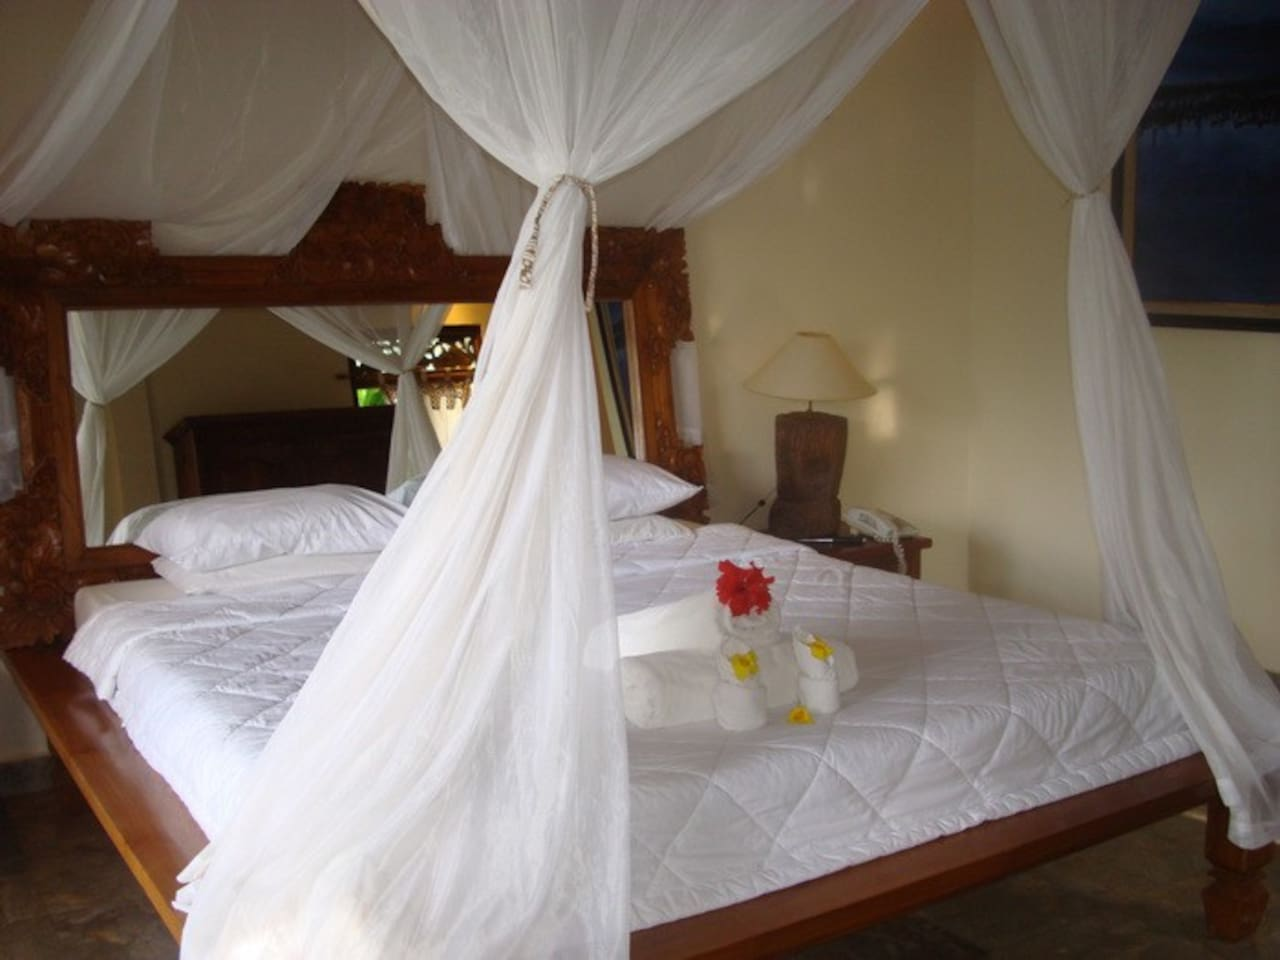 Each guestroom features different set up and lay out